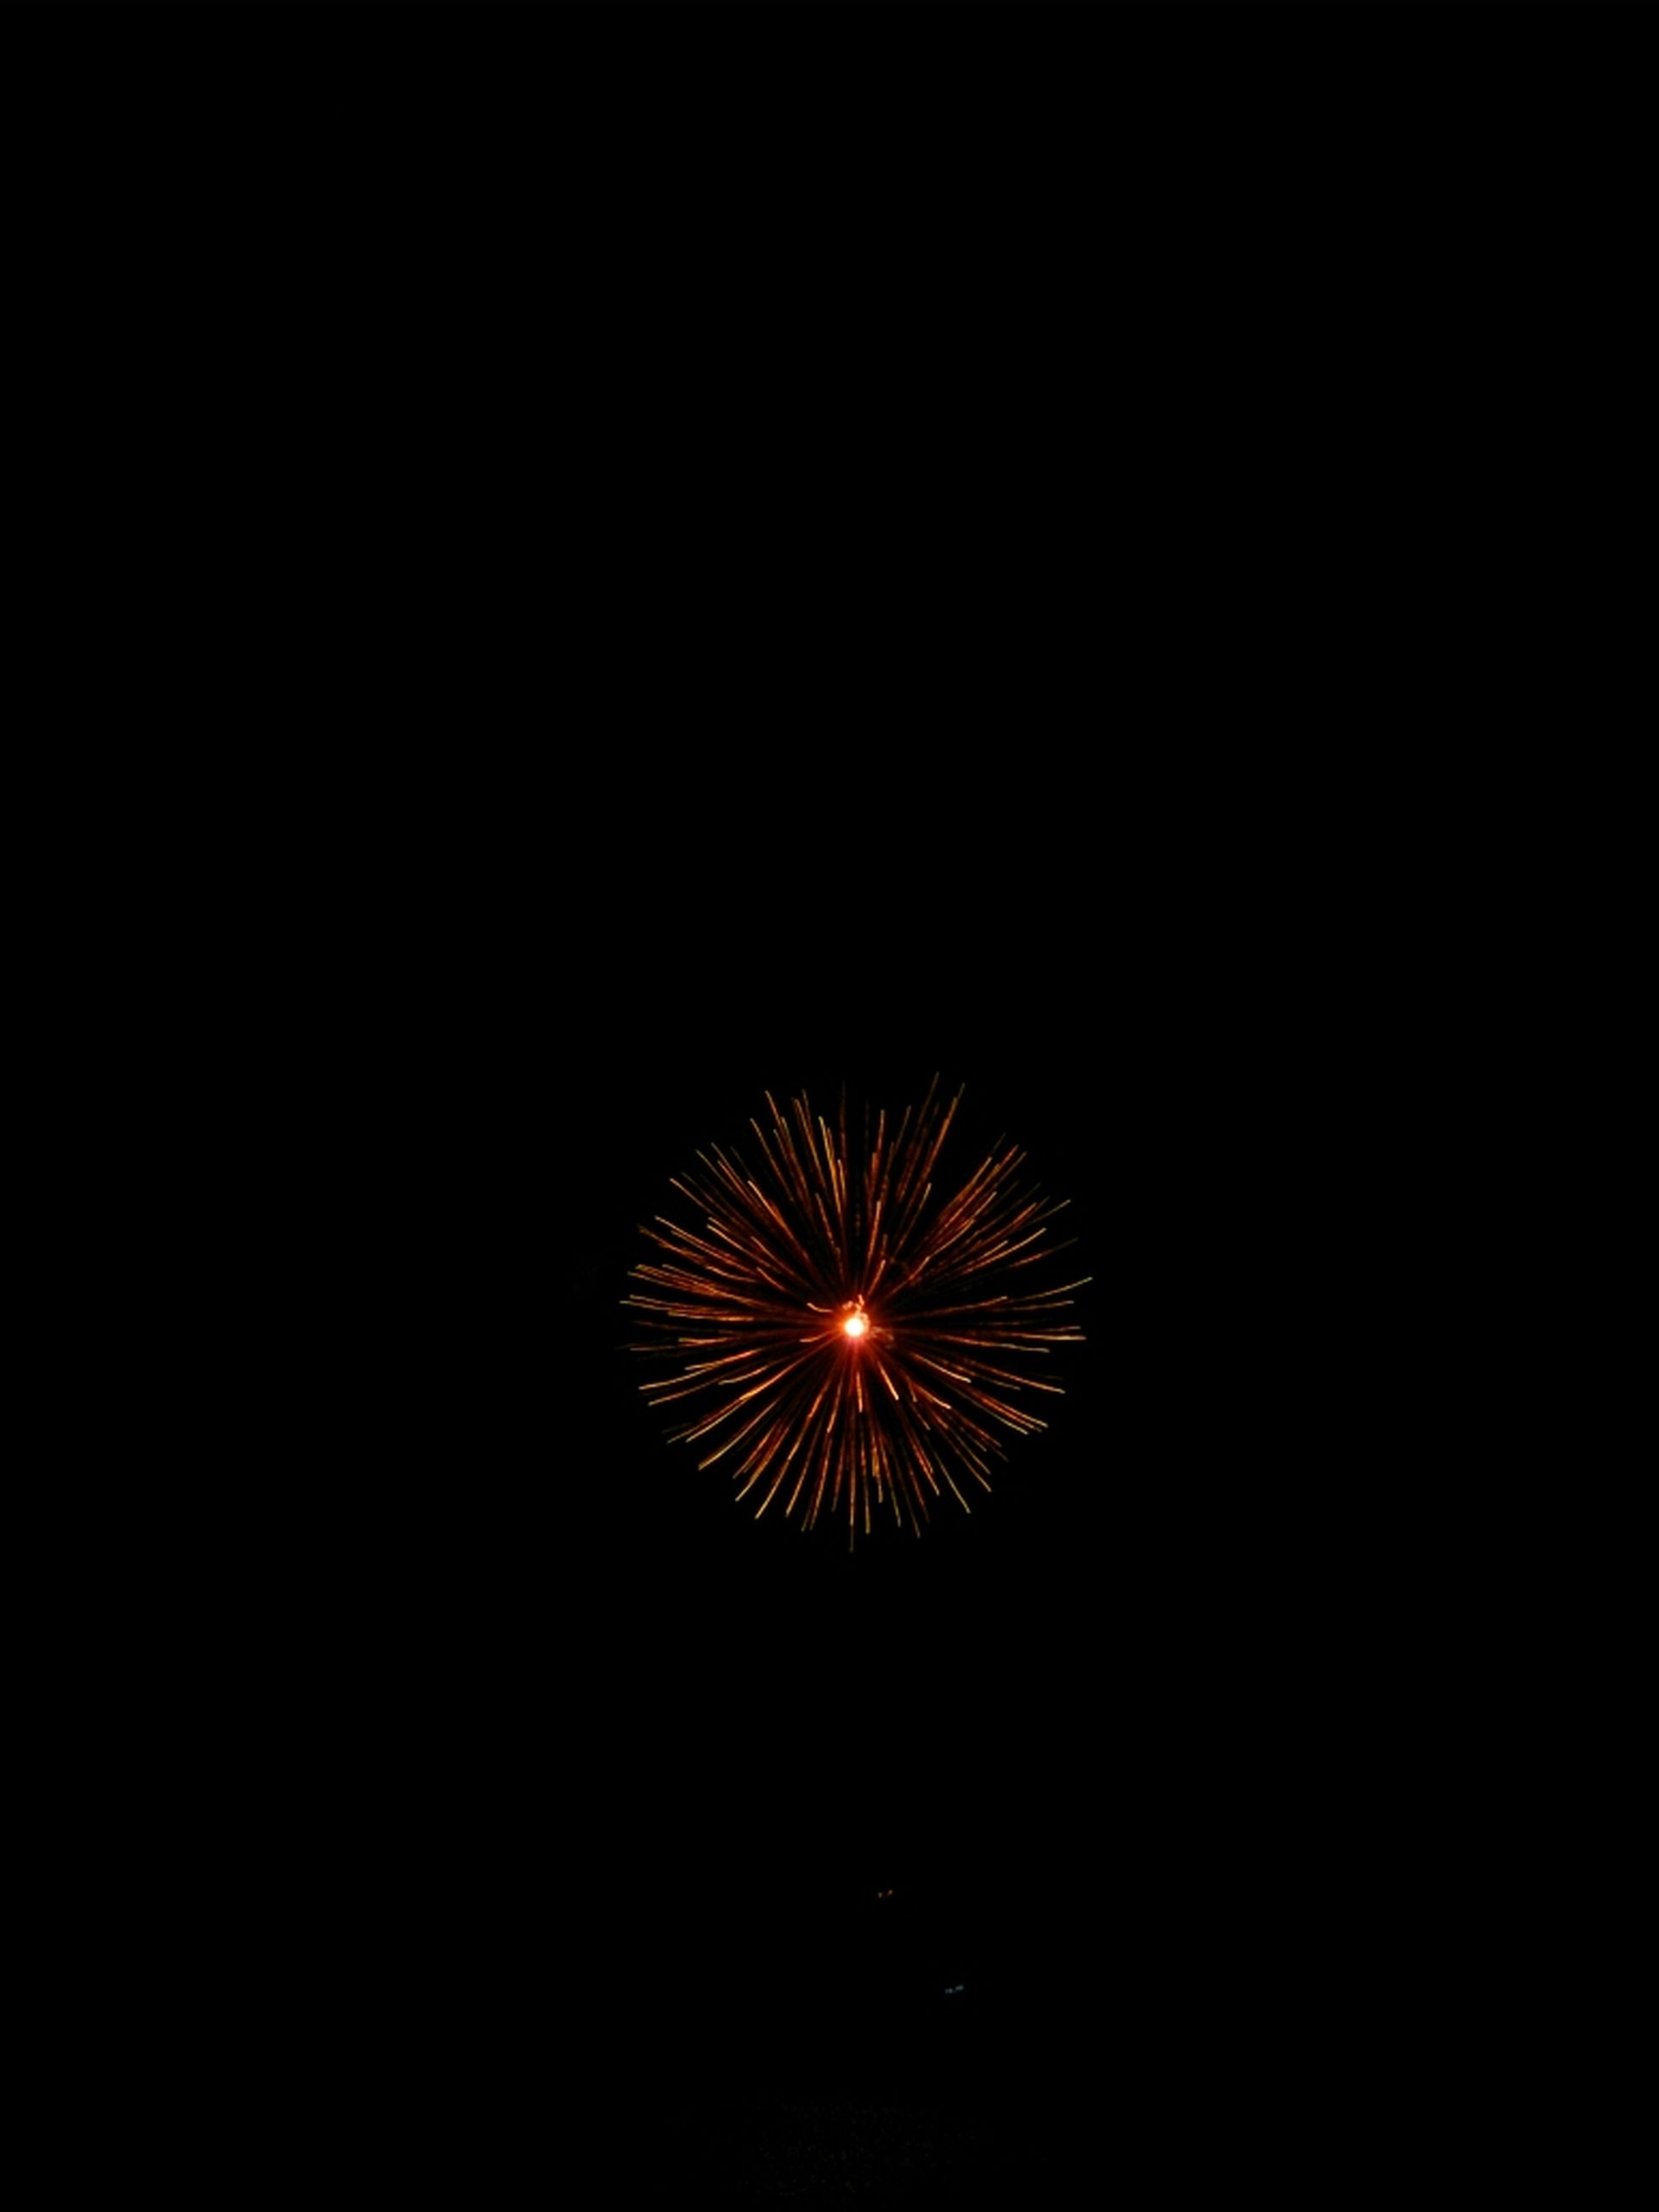 night, illuminated, firework display, glowing, celebration, long exposure, exploding, firework - man made object, motion, low angle view, arts culture and entertainment, copy space, sparks, event, fire - natural phenomenon, blurred motion, dark, firework, entertainment, sky